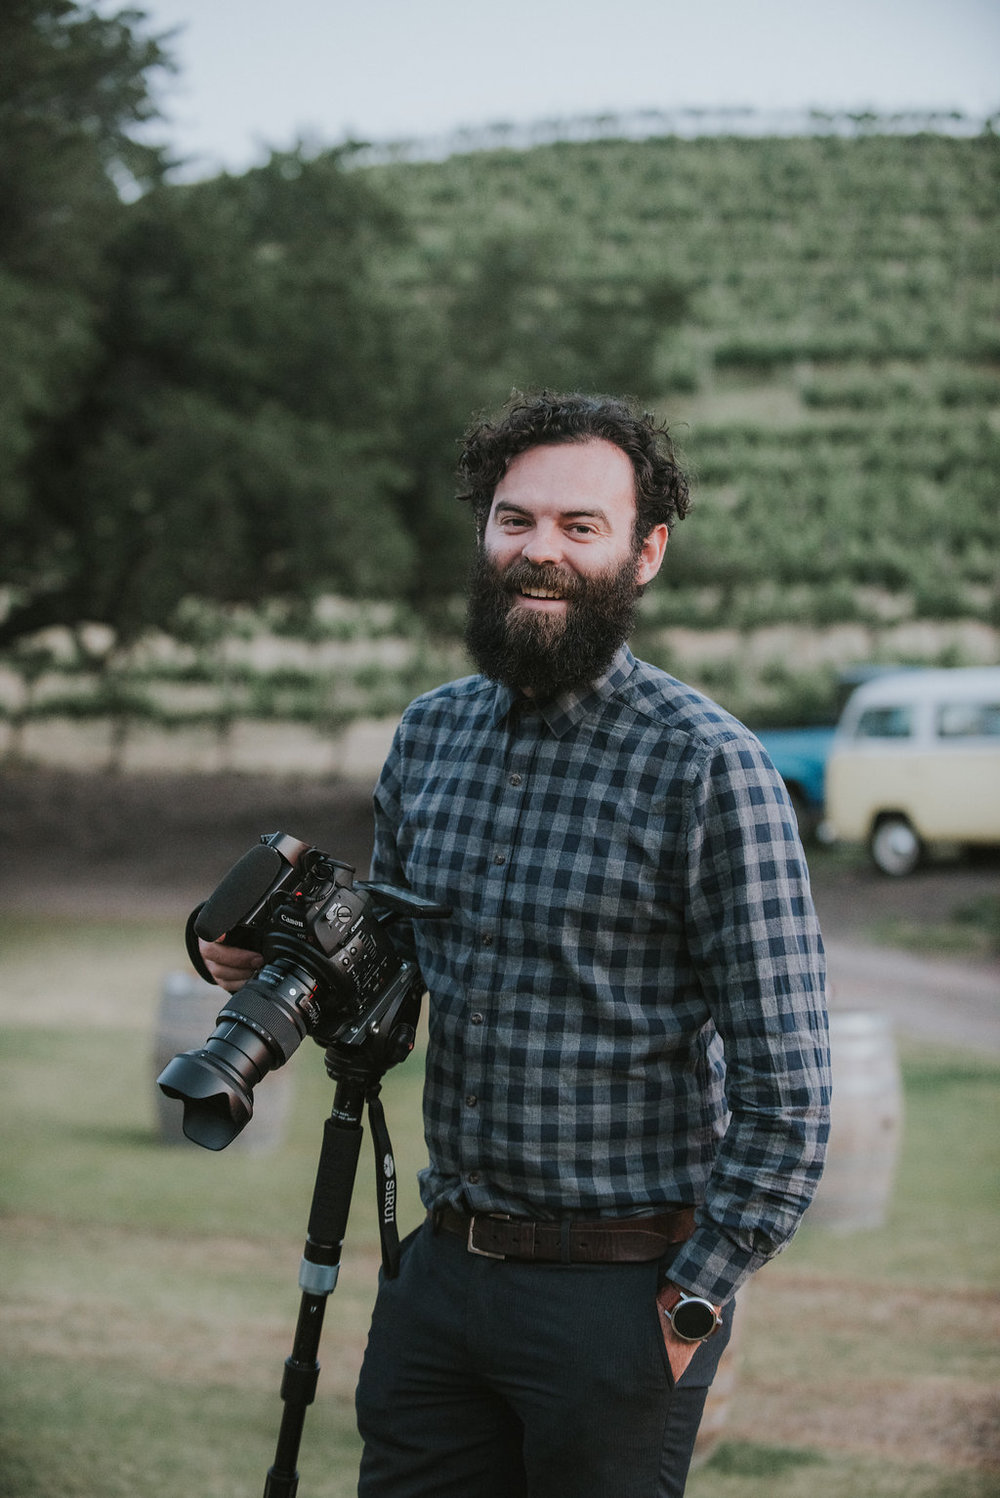 Weston Reel - our videographer extraordinaire!